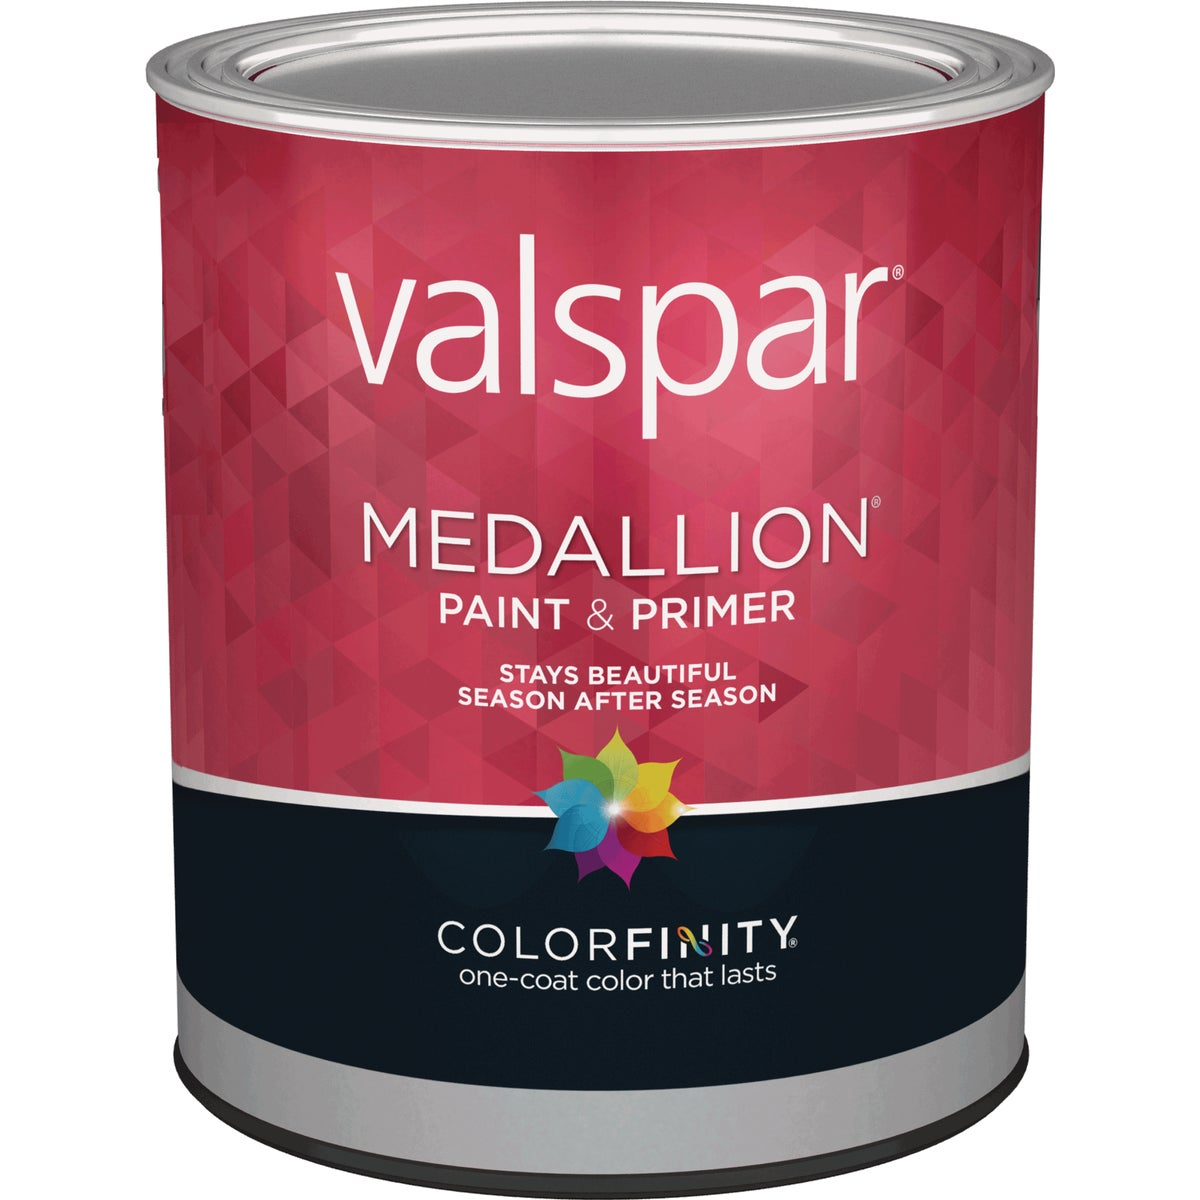 EXT FLAT WHITE PAINT - 027.0045501.005 by Valspar Corp